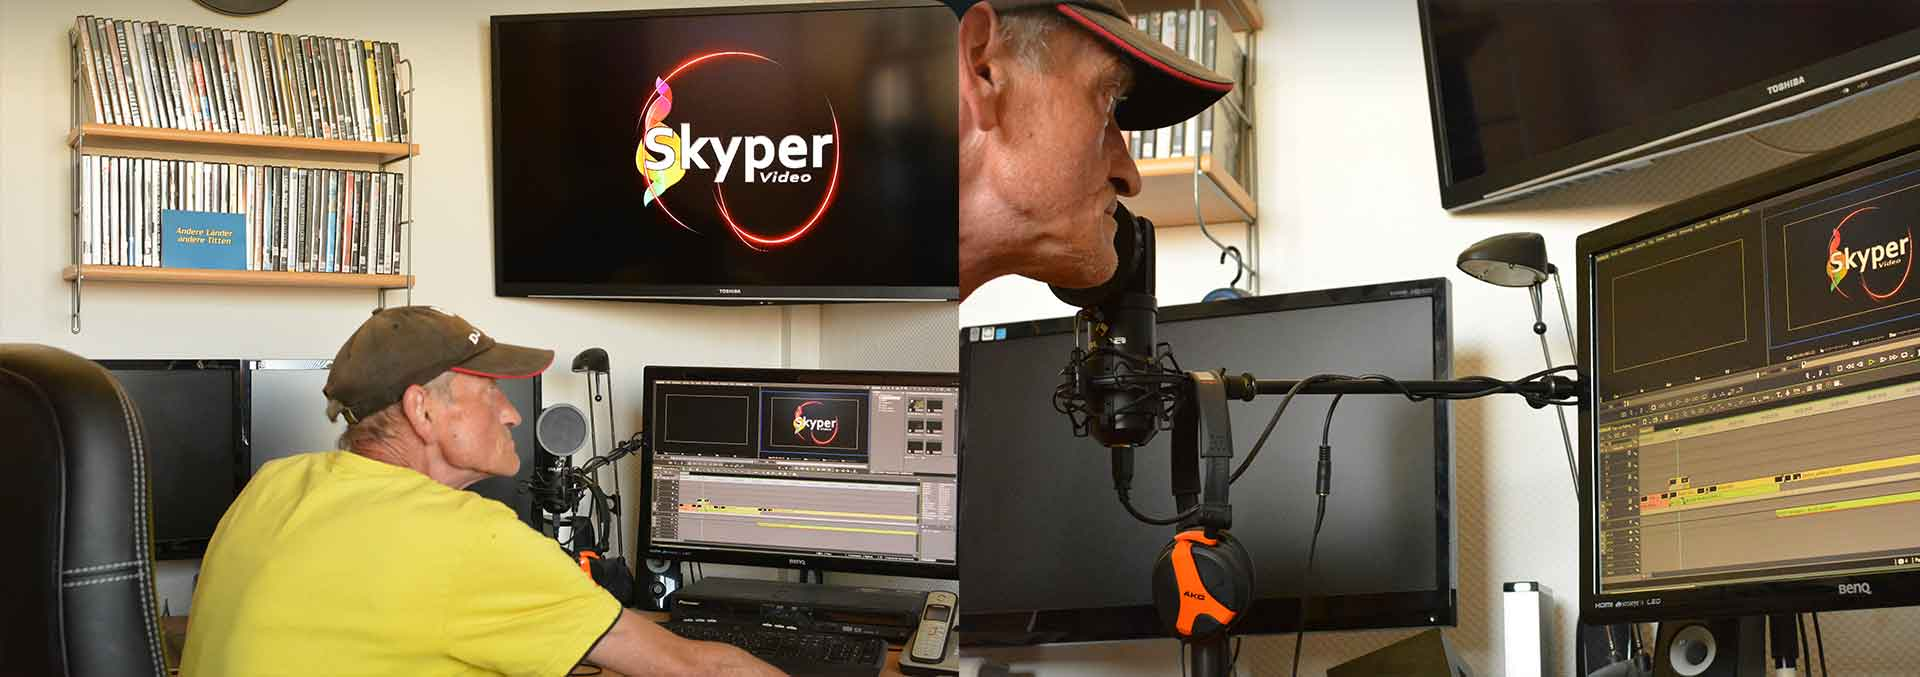 Skyper Video Videostudio